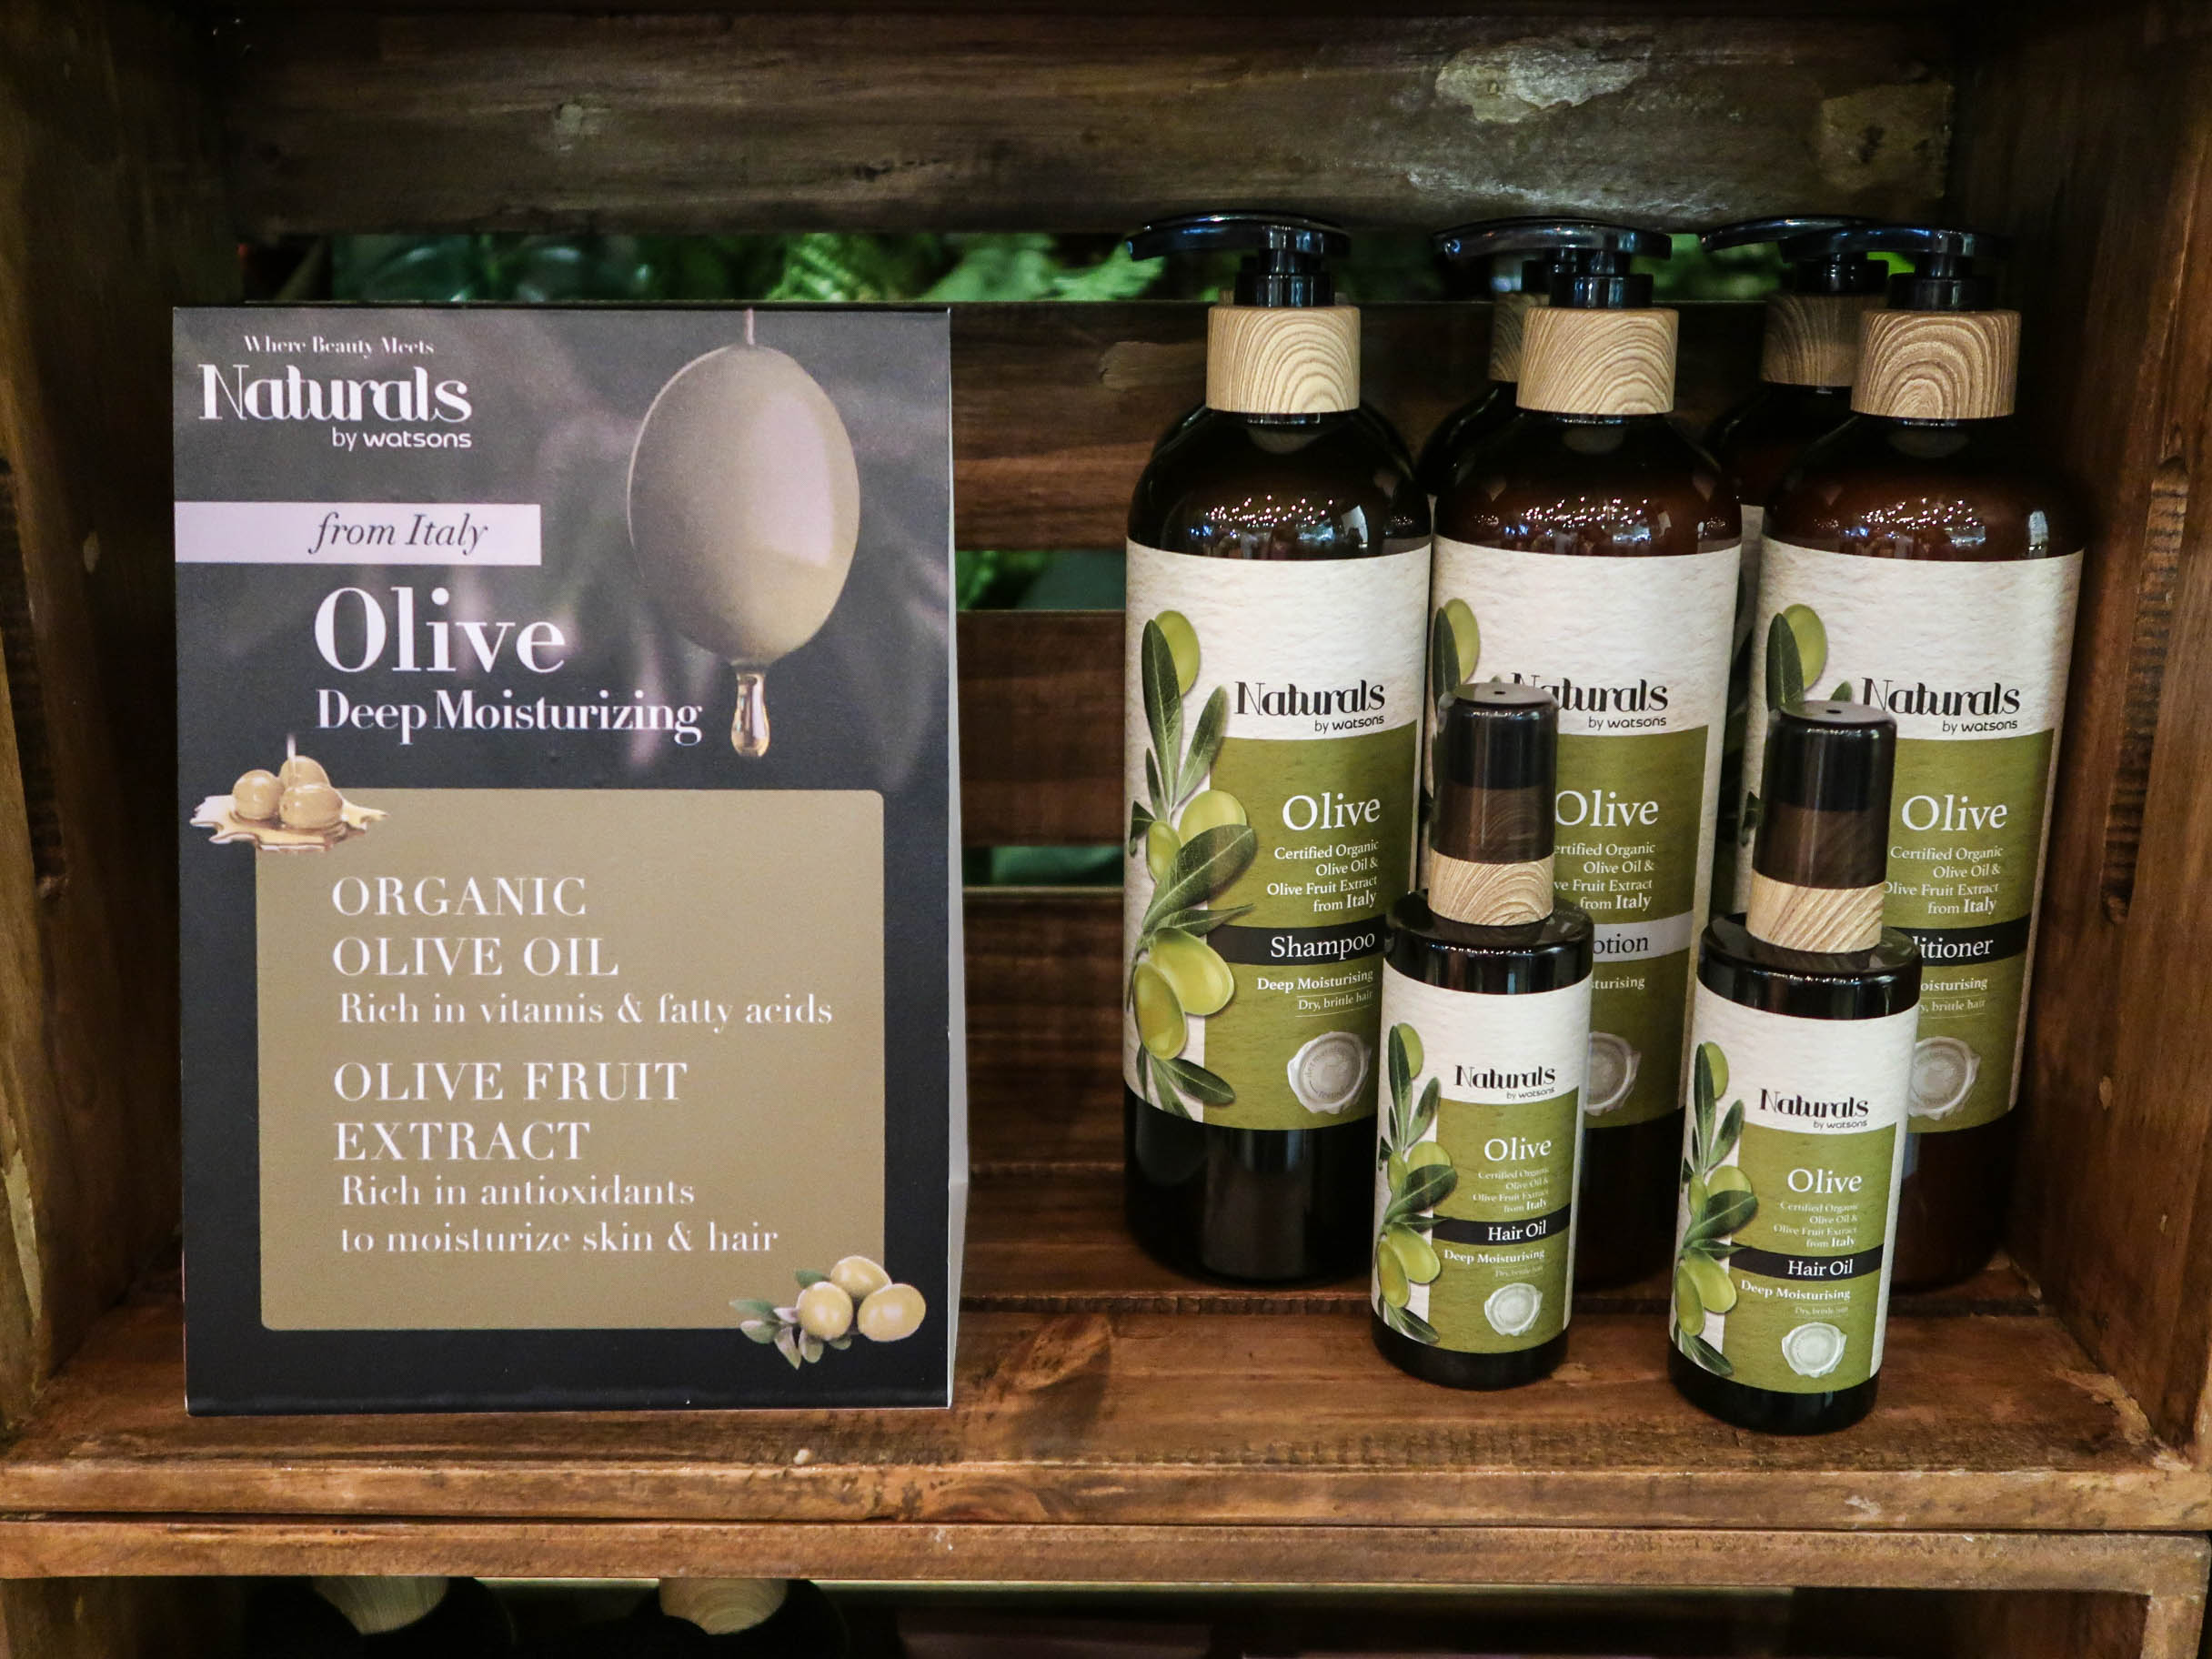 Go Natural Watsons Launches Their Line Of Organic Skin Care